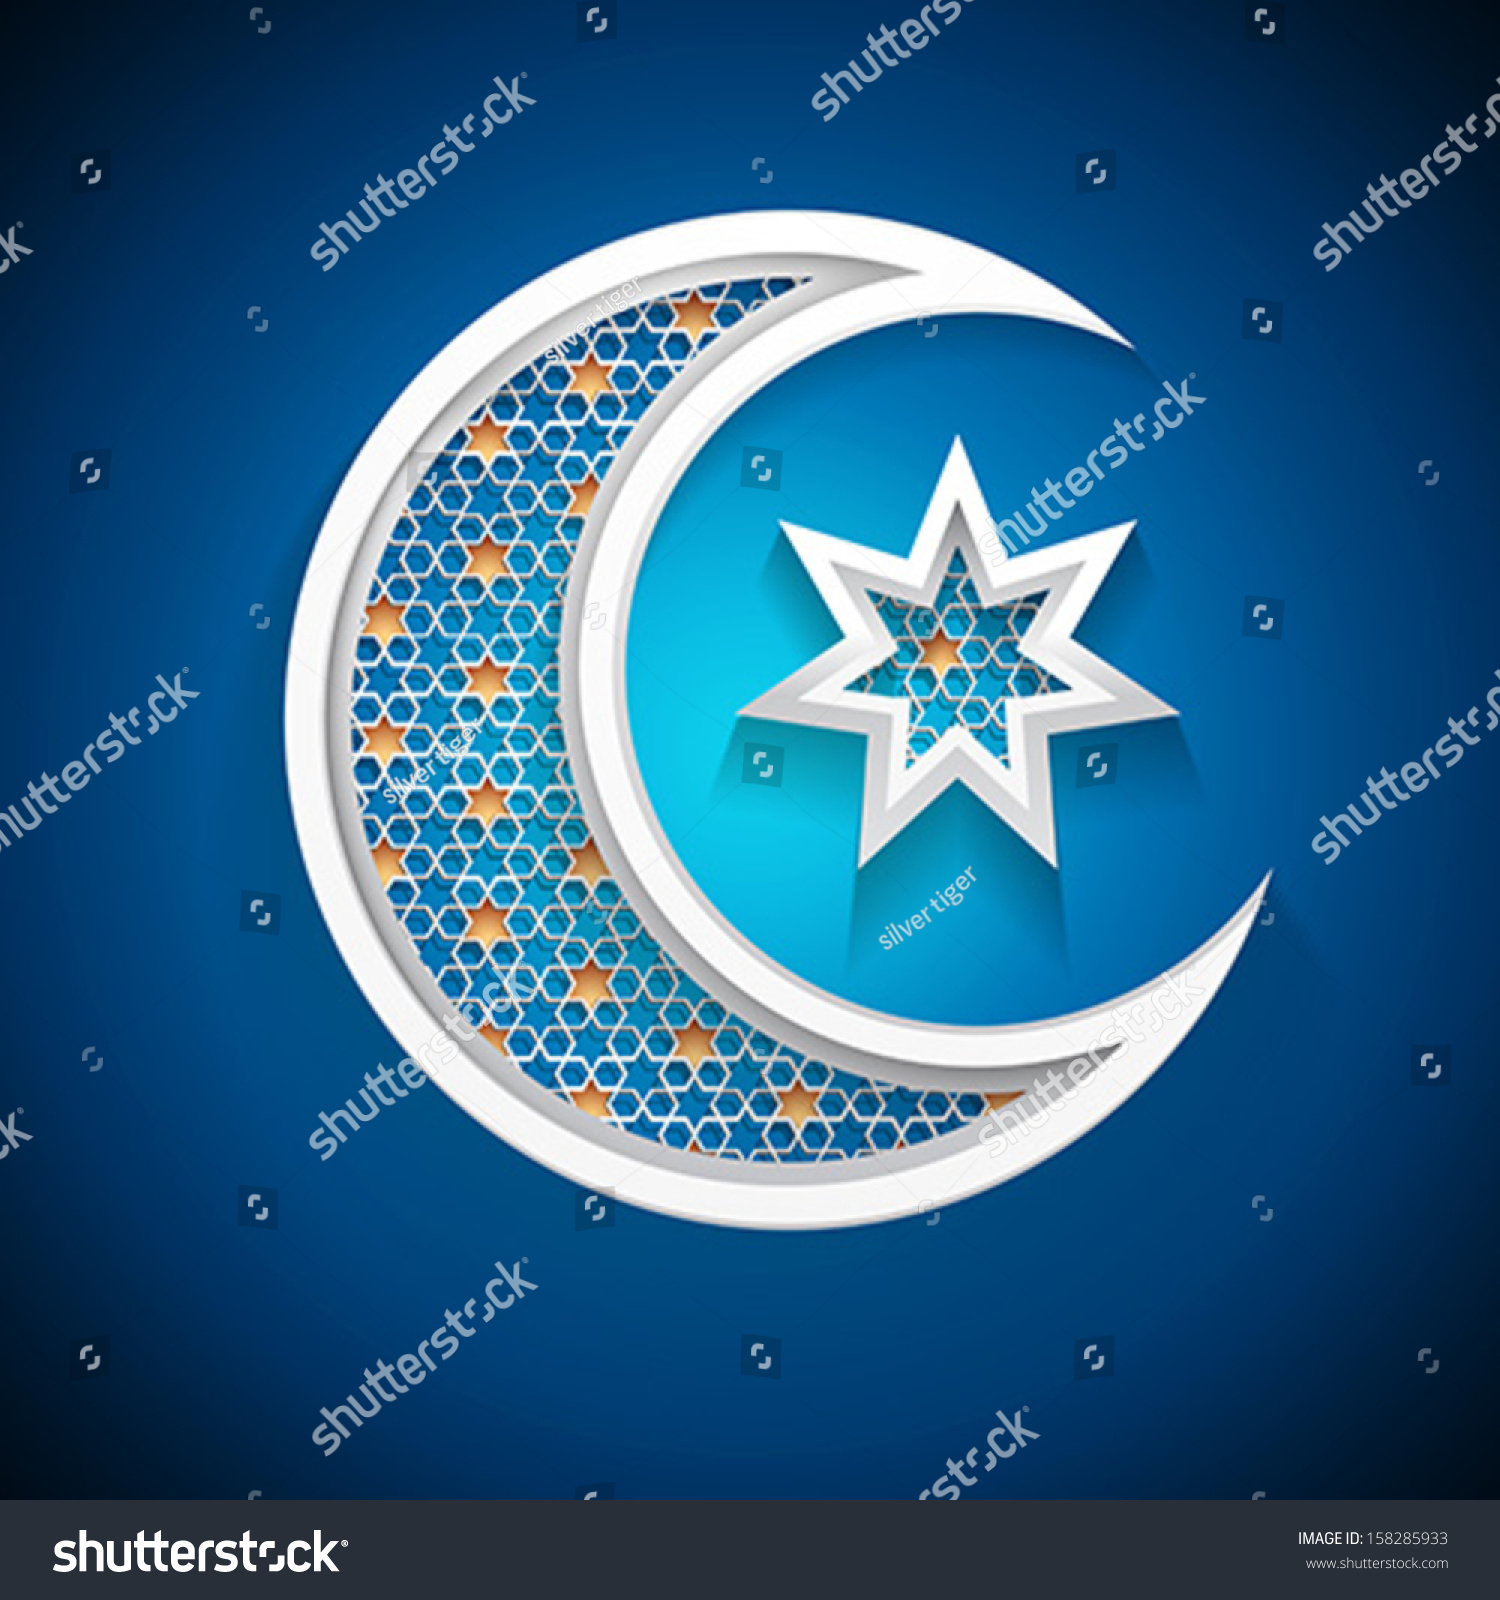 moon muslim dating site Free muslim singles marriage, matrimonial, social neworking website where you can find muslim wife or husband in islamic way.